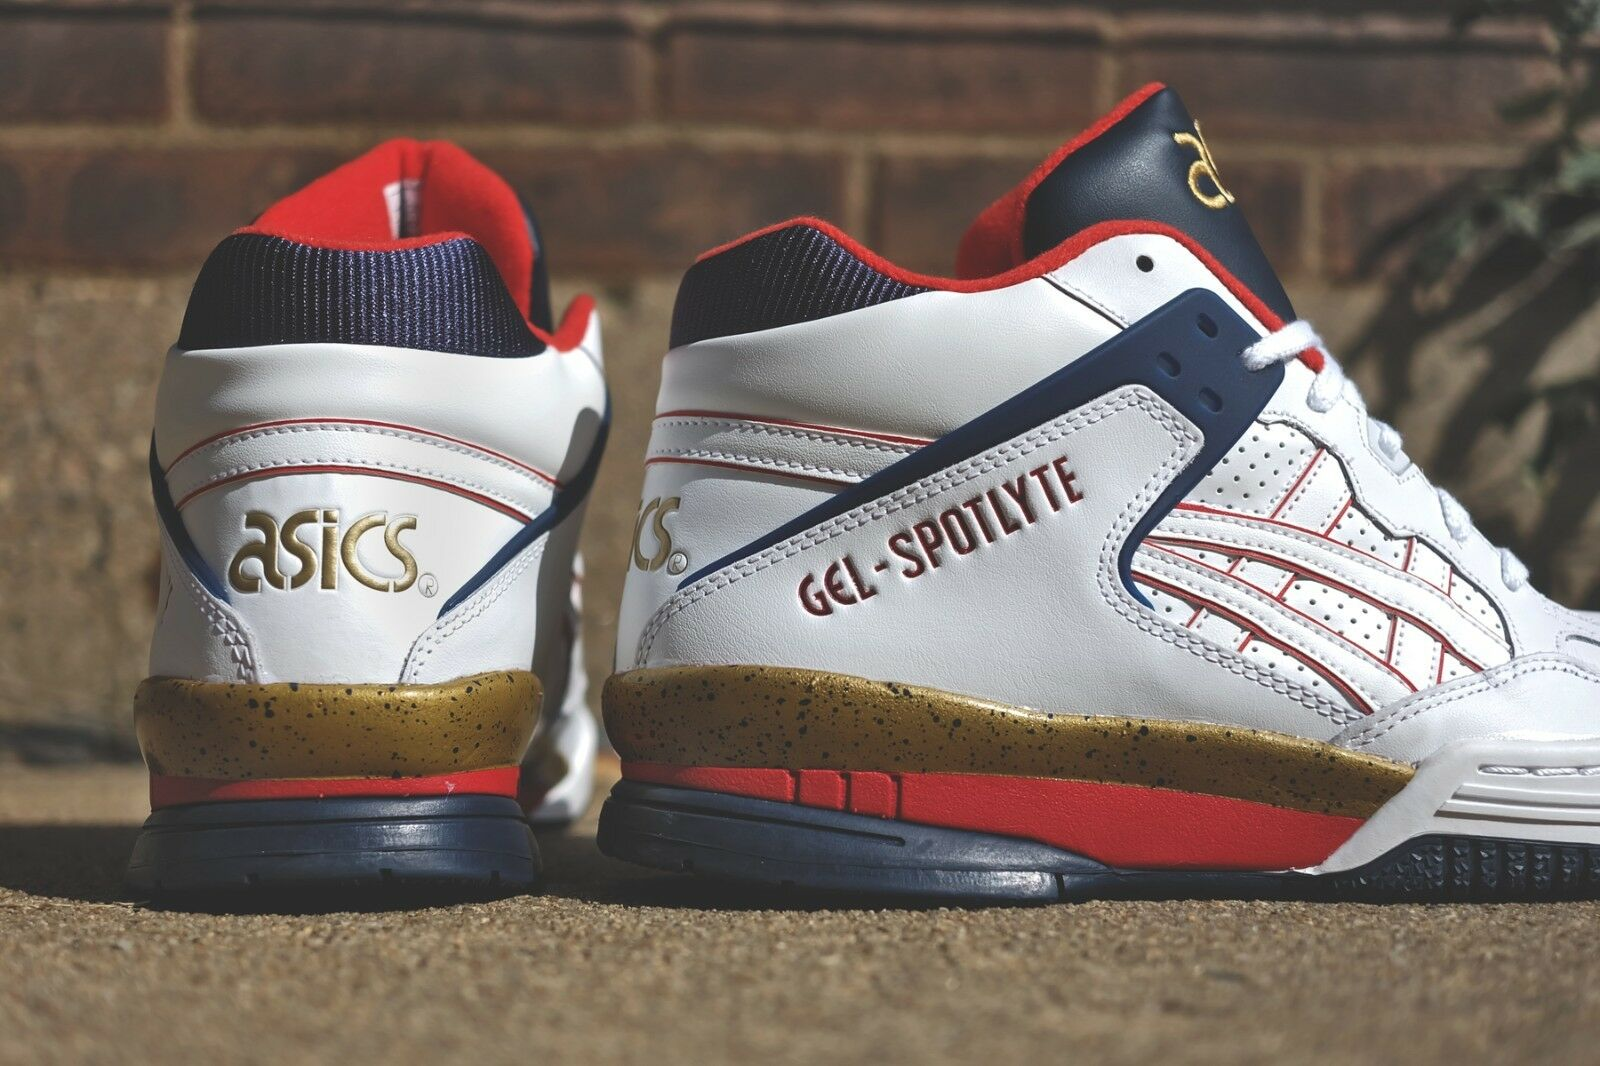 Asics Gel-Spotlyte Isiah Thomas H447L-0101 Dream Team Olympics Basketball USA 13